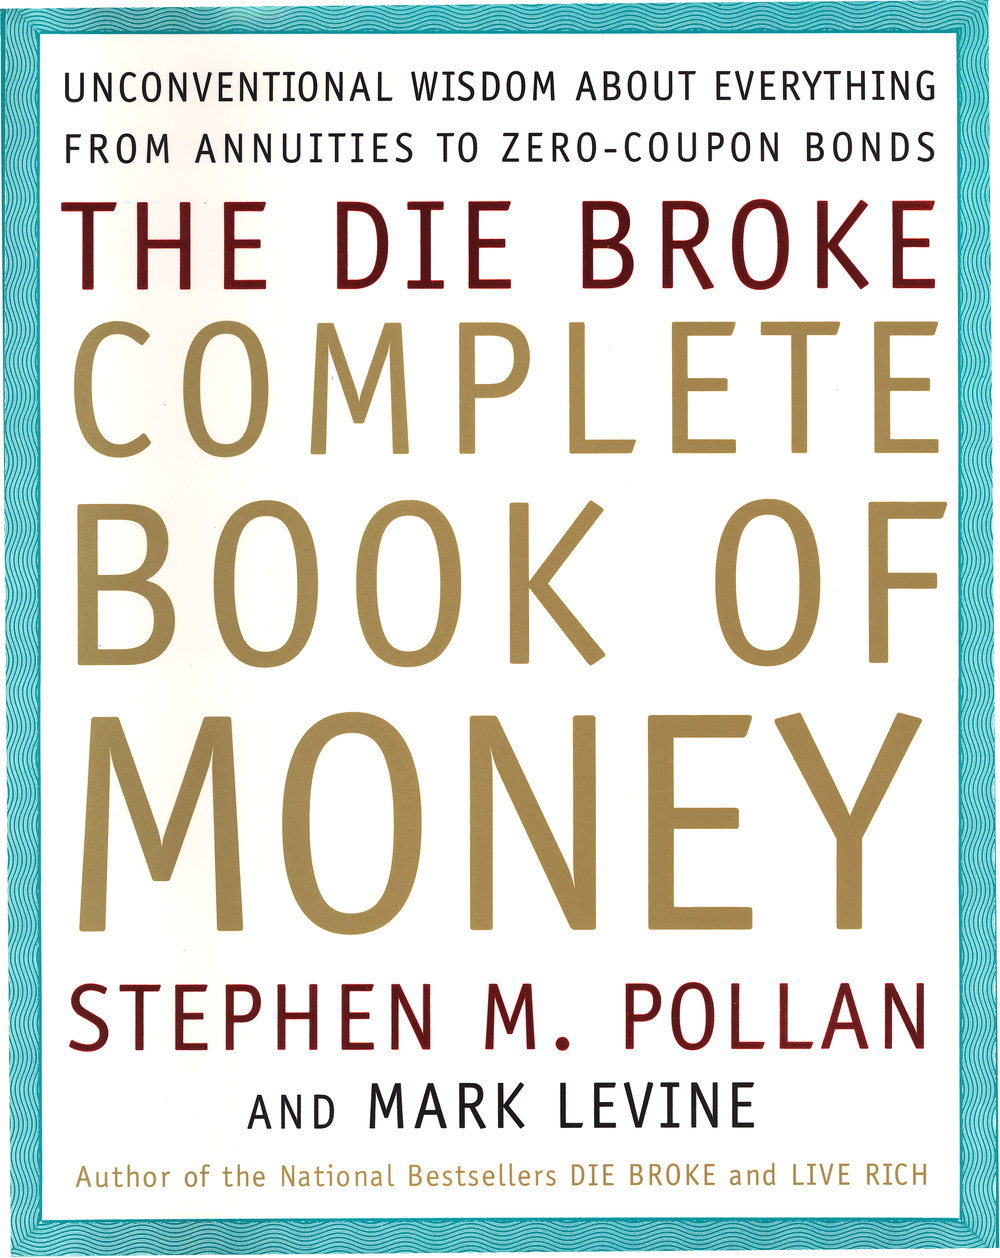 CompleteBookMoney.jpg